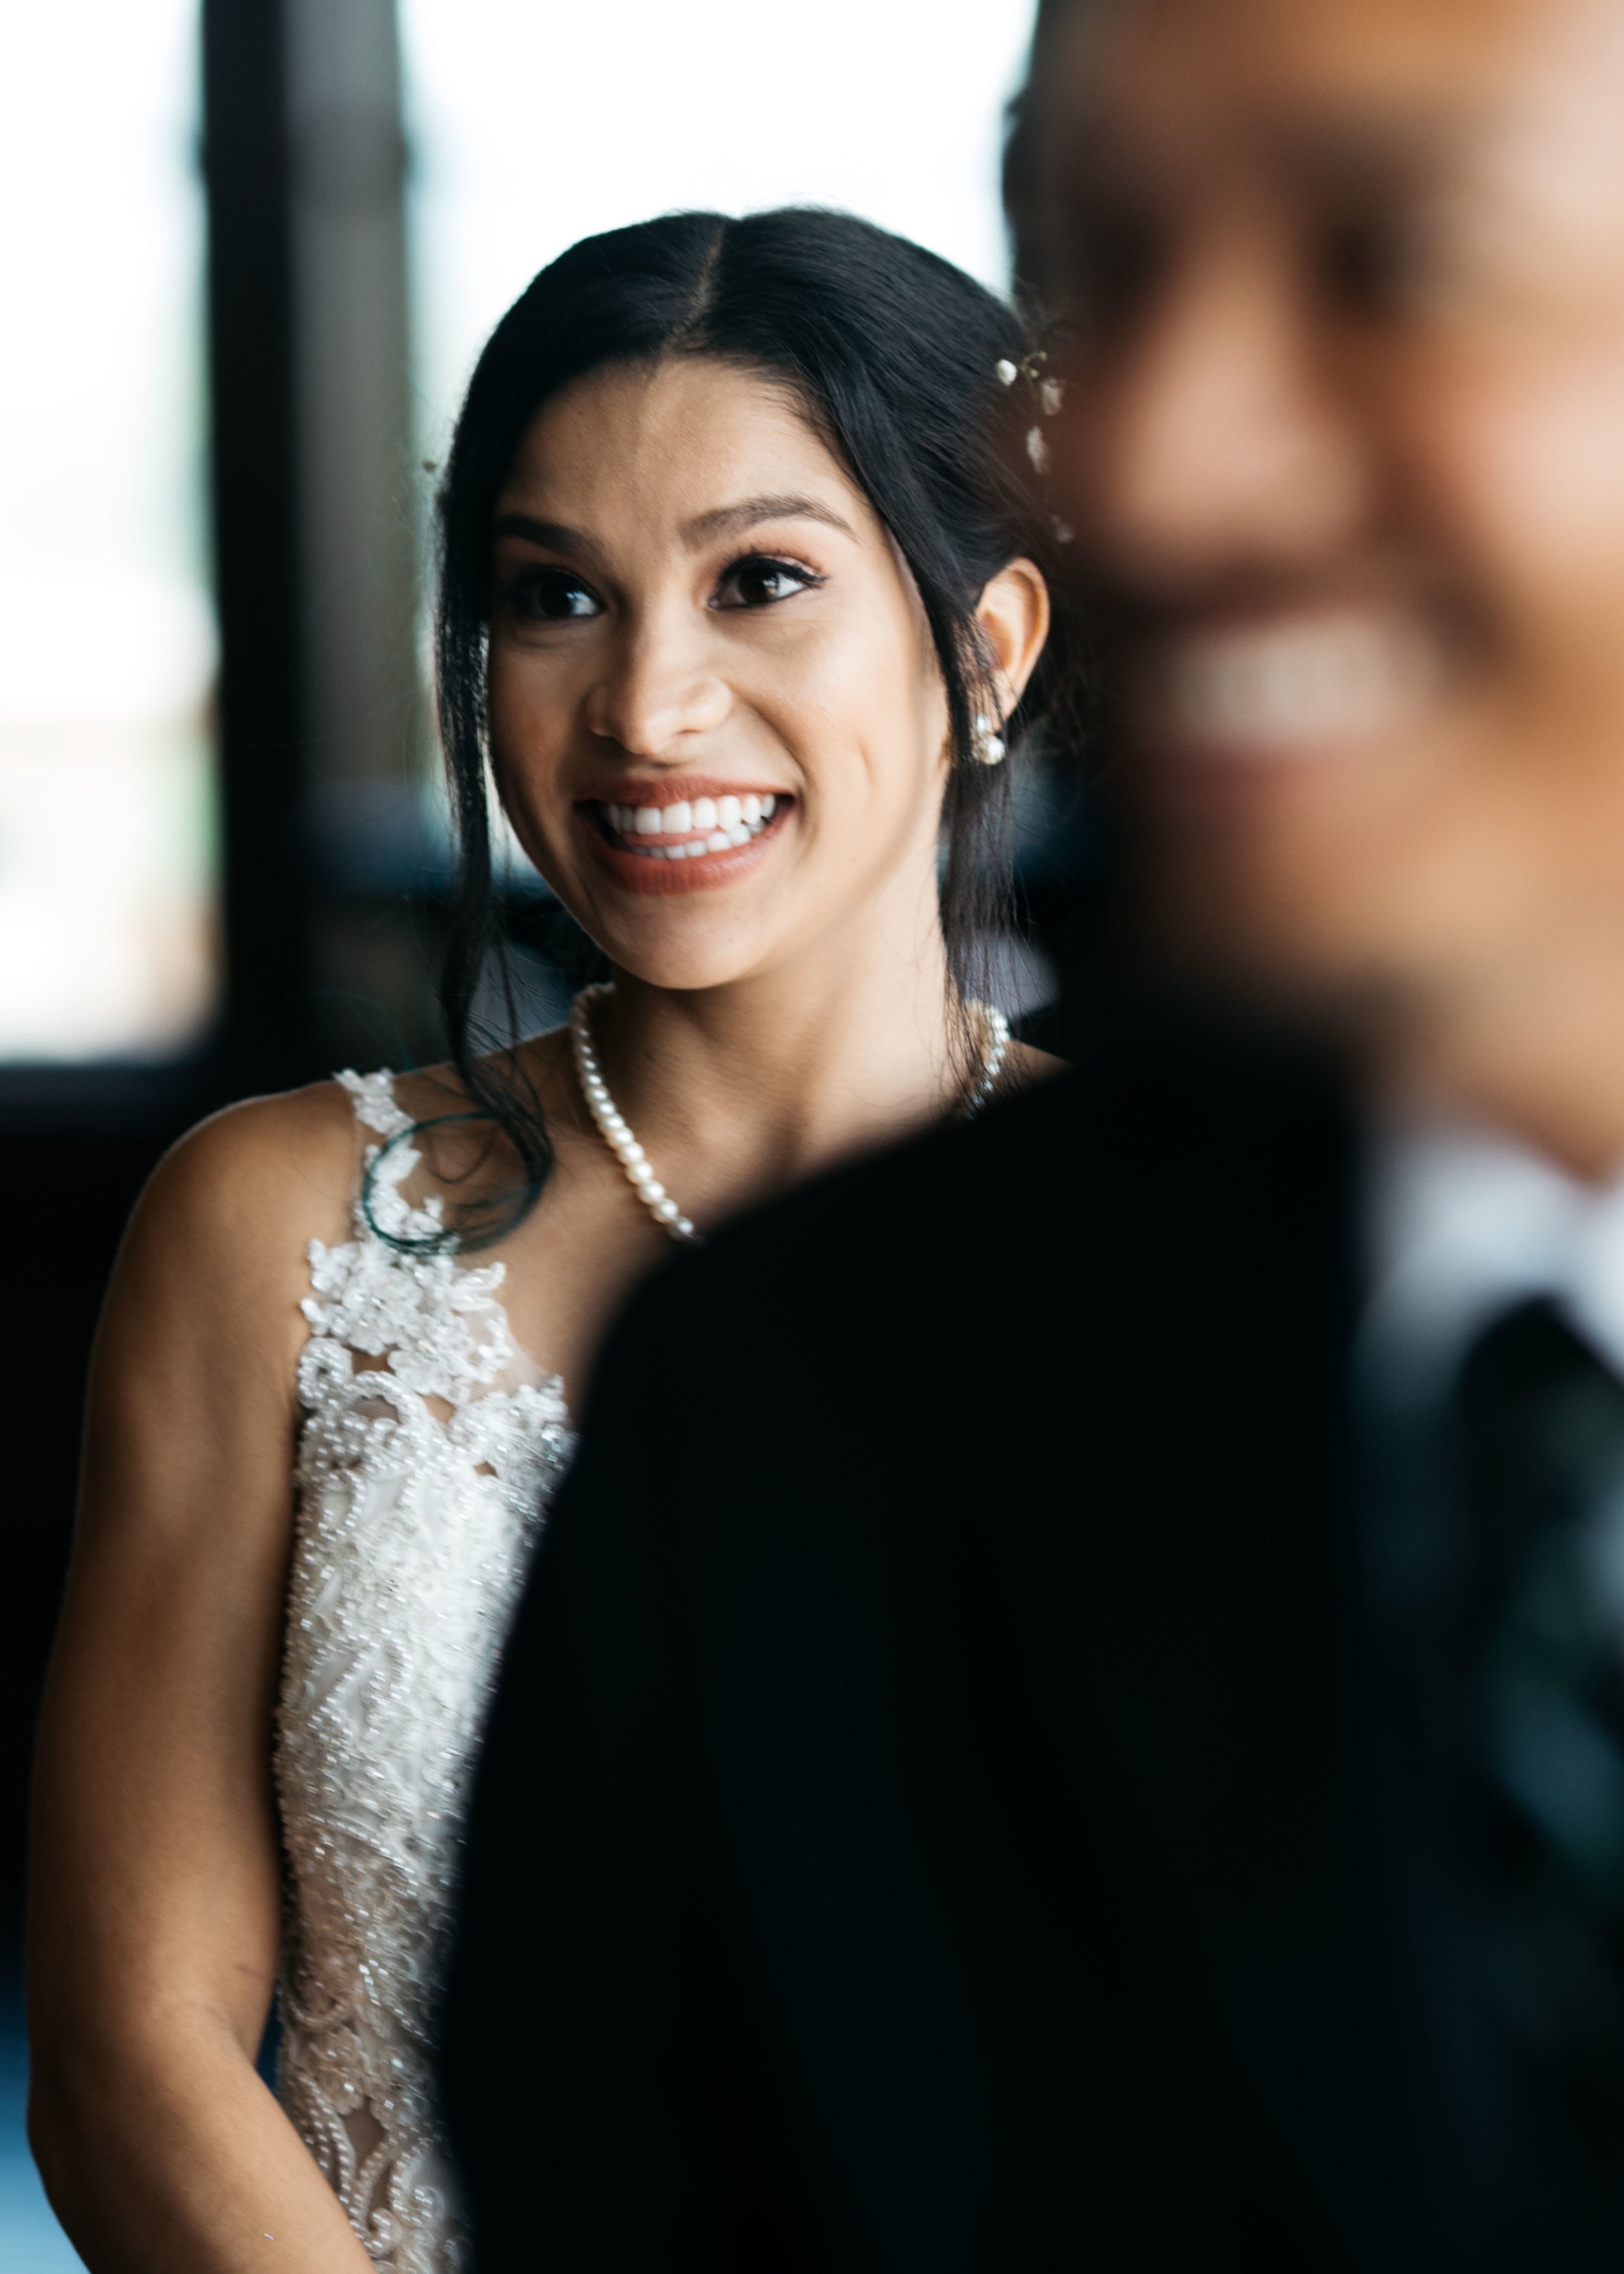 pinery-at-the-hill-wedding-366.jpg